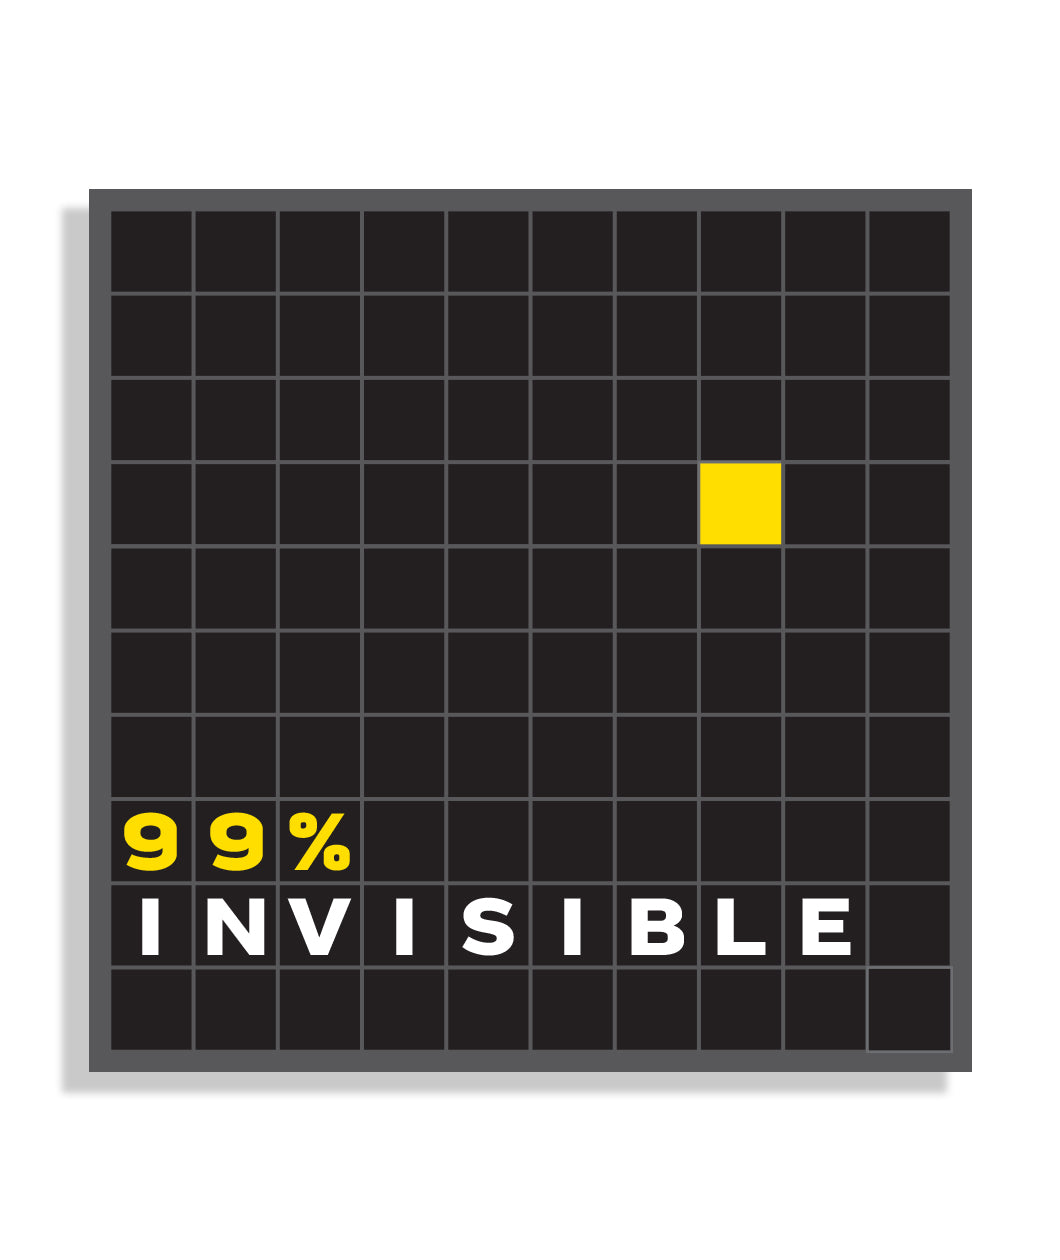 99% Invisible Decal